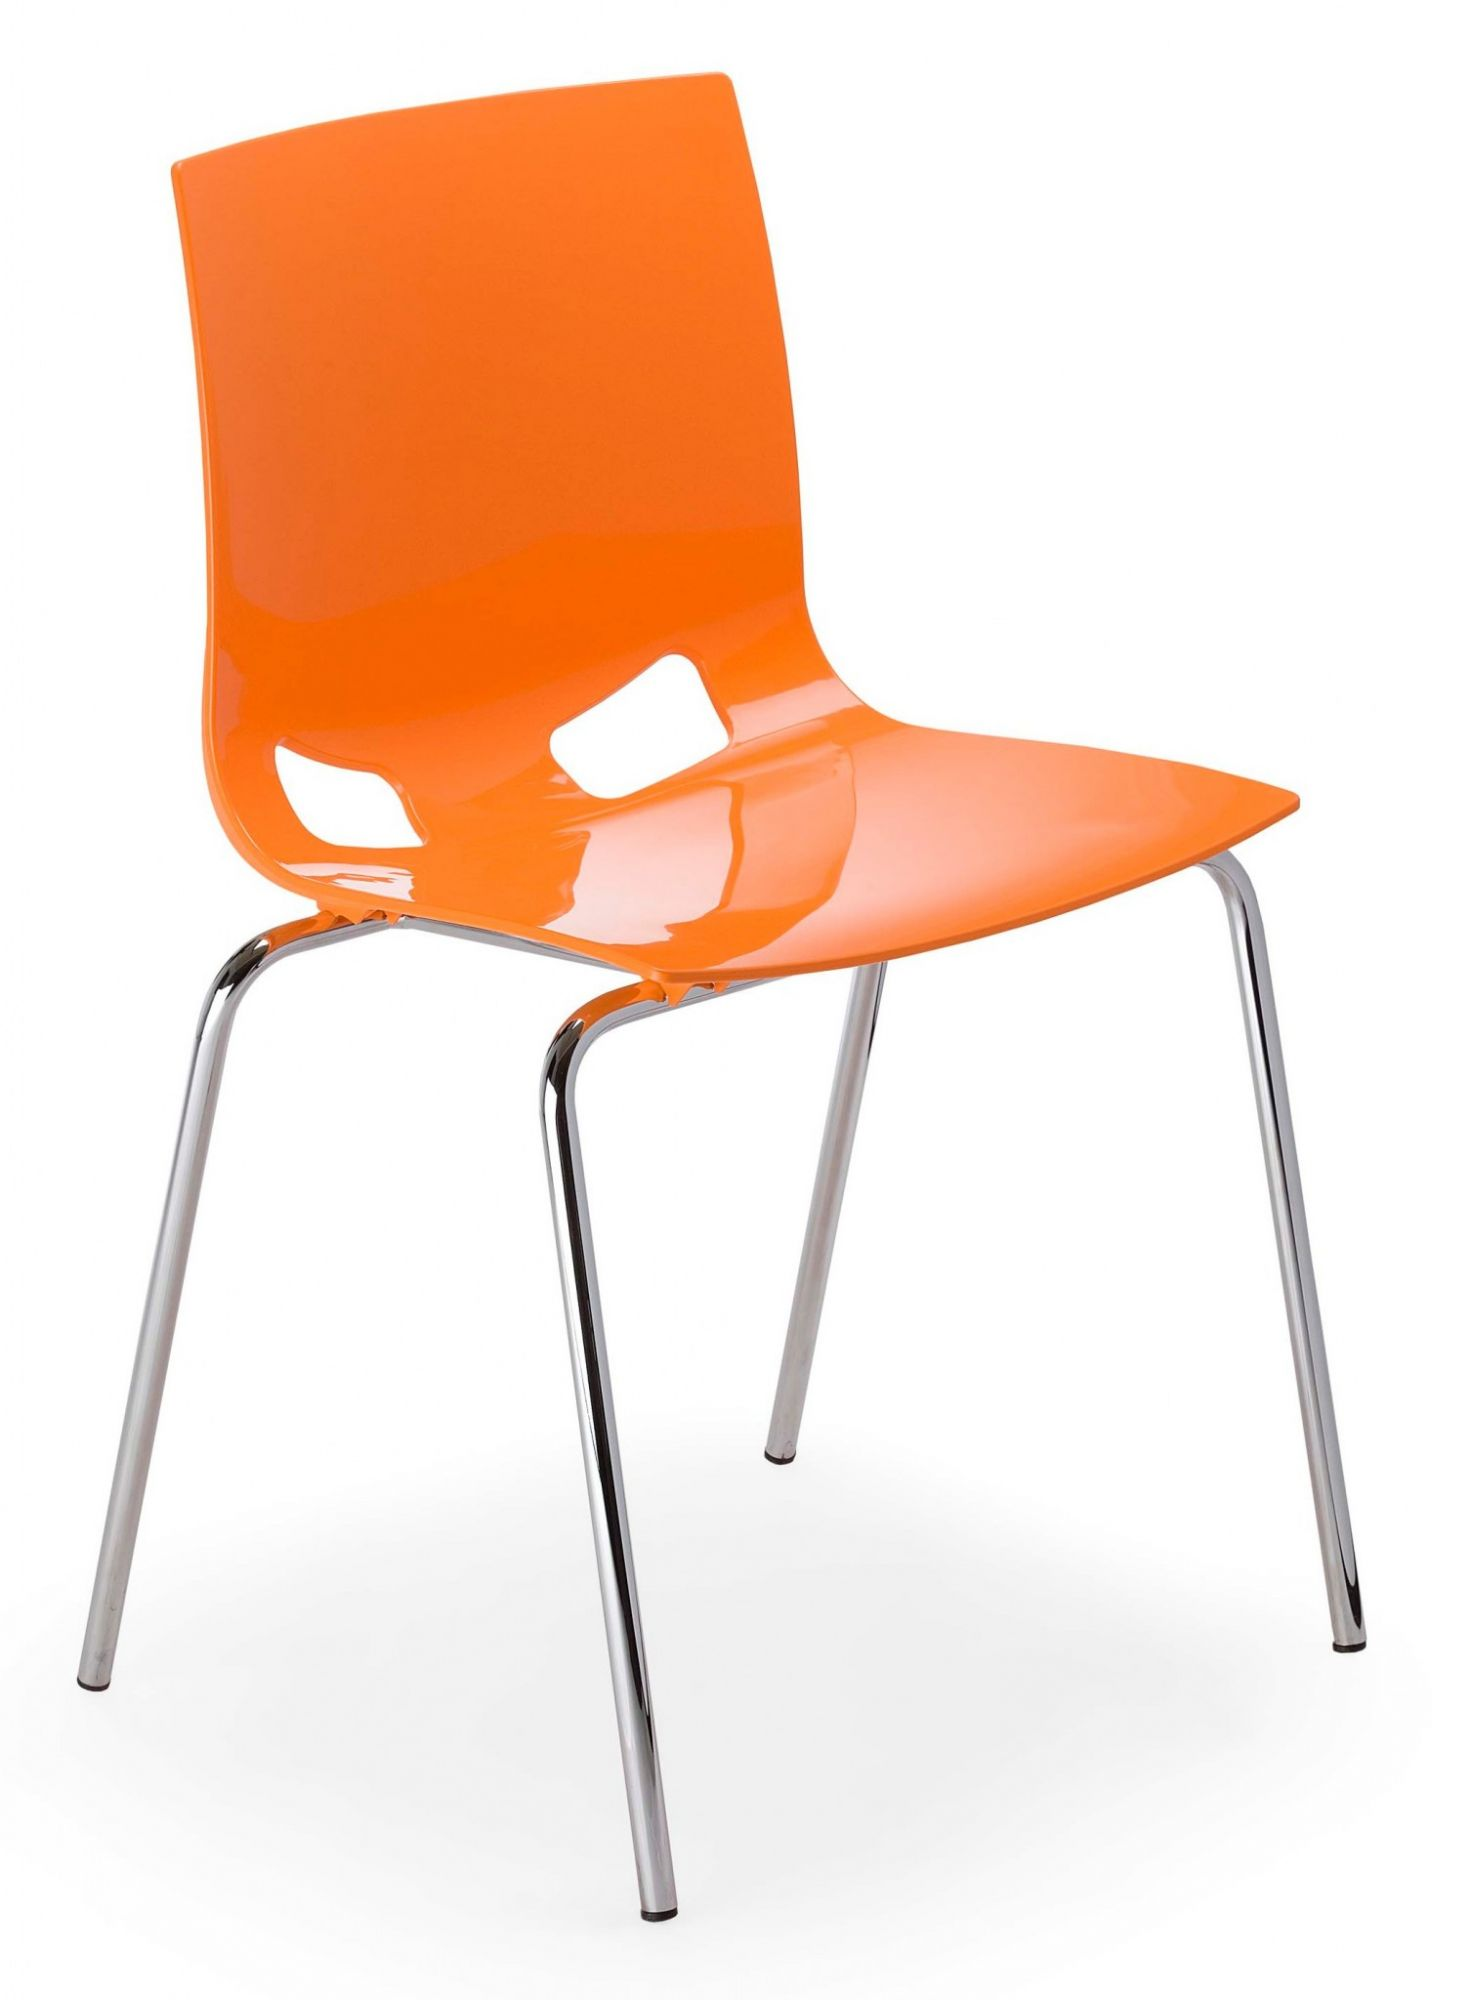 High Gloss Plastic Chairs Fargo Online Reality